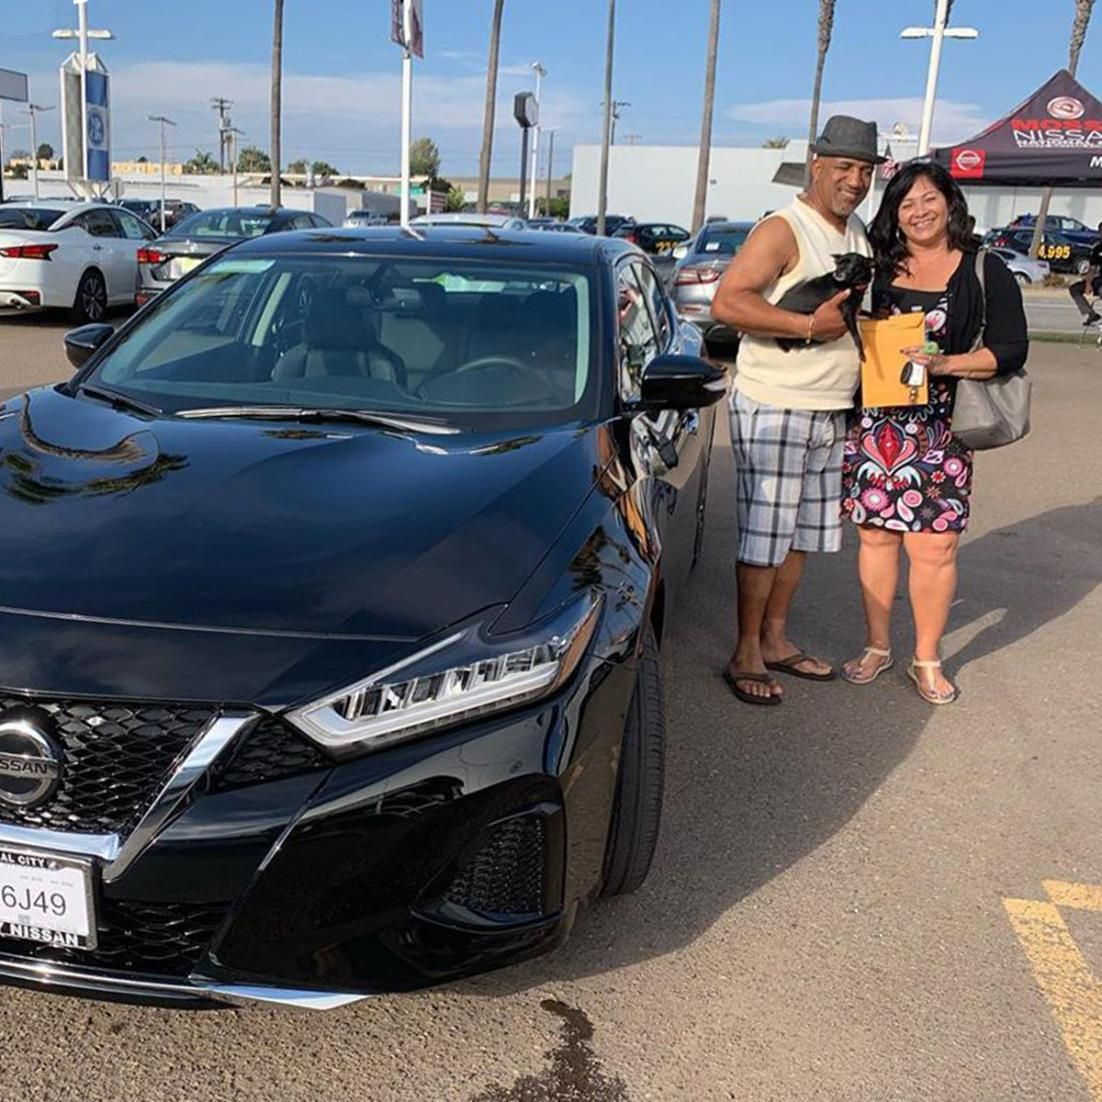 Nissan National City >> Testimonial Tuesday From Our Friends At Mossy Nissan